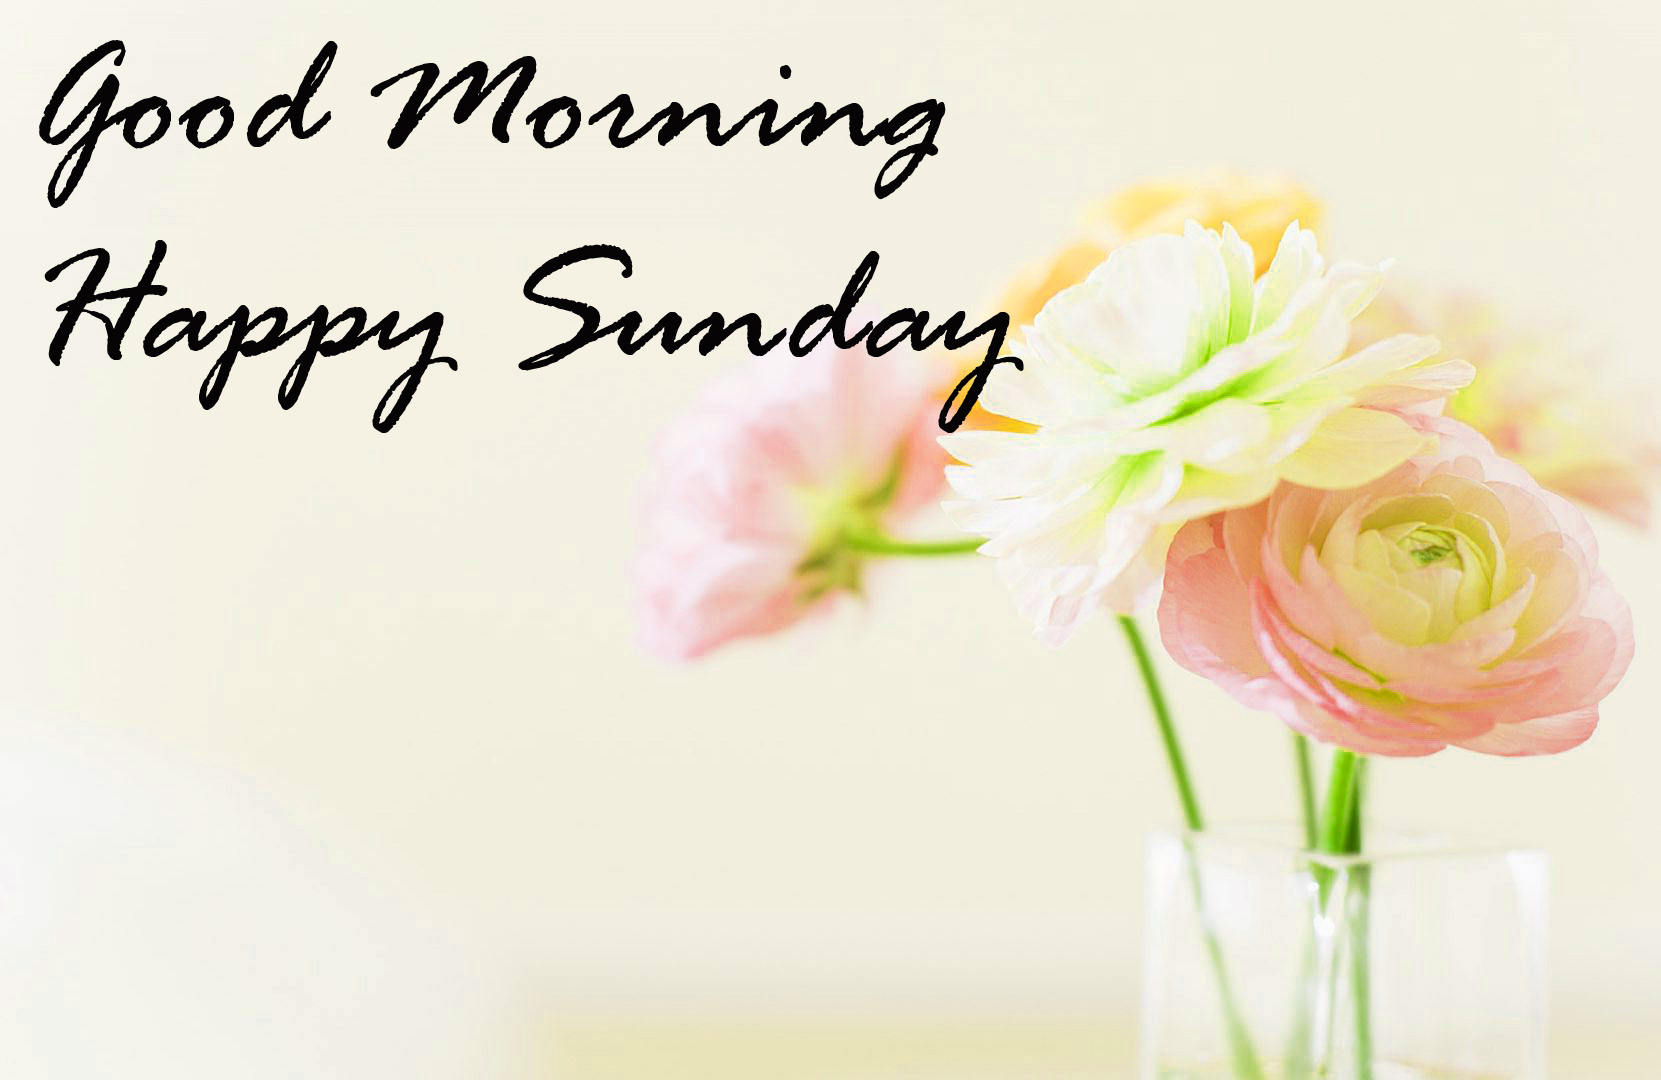 Sunday Good Morning Images Wallpaper Pics Download